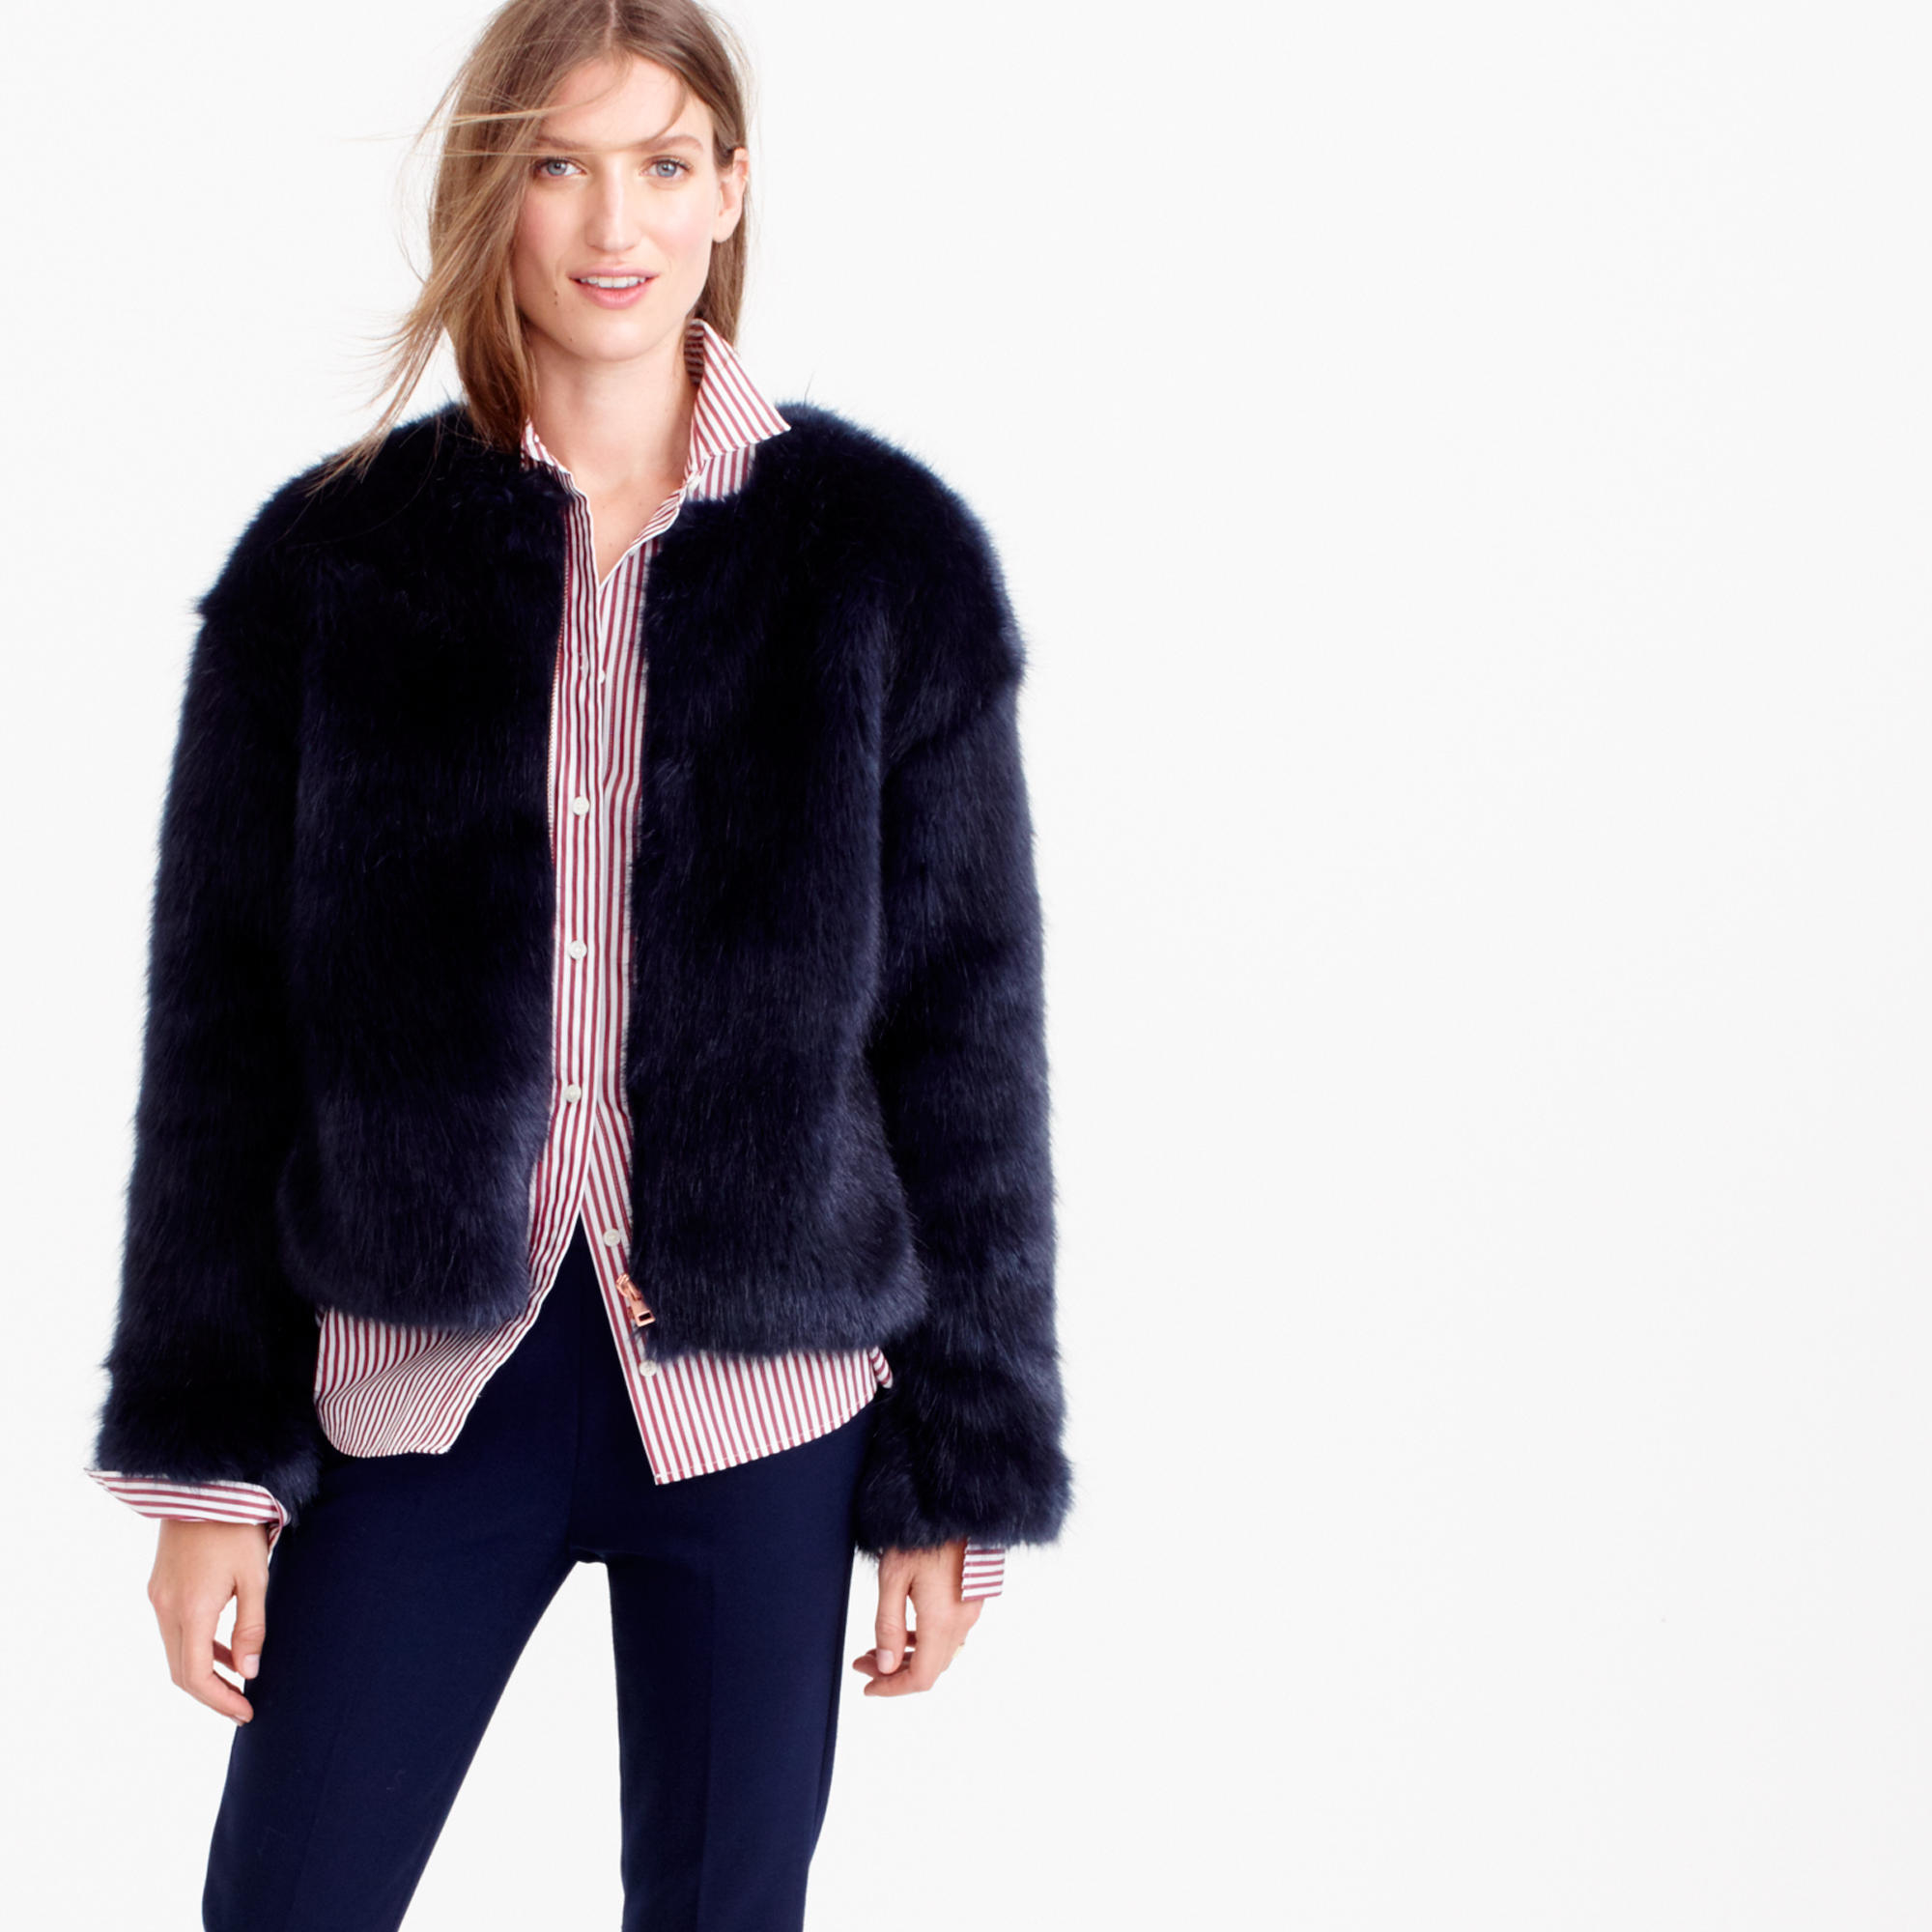 760b6f5b0e205 Lyst - J.Crew Collection Faux-fur Jacket in Blue